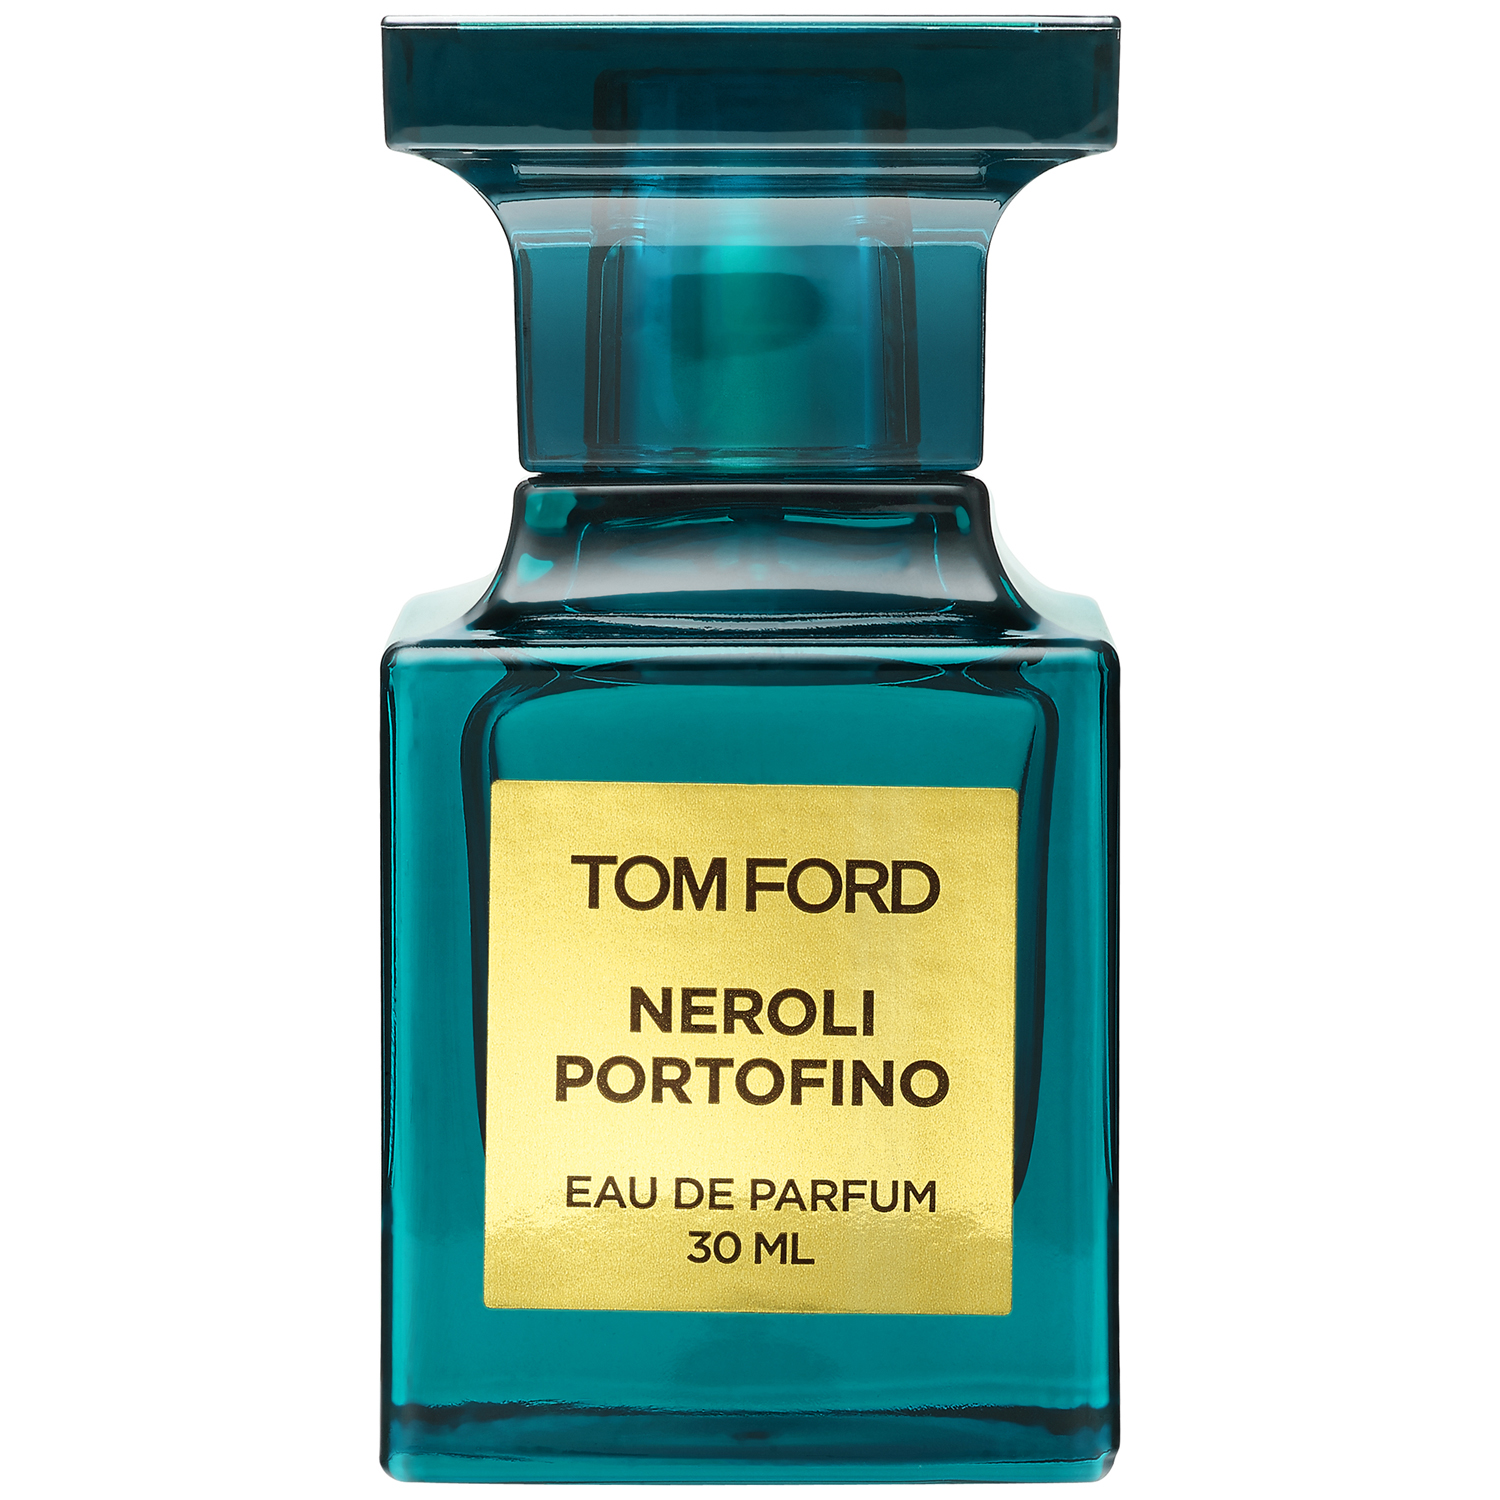 tom ford neroli portofino fragrance and giveaway. Cars Review. Best American Auto & Cars Review